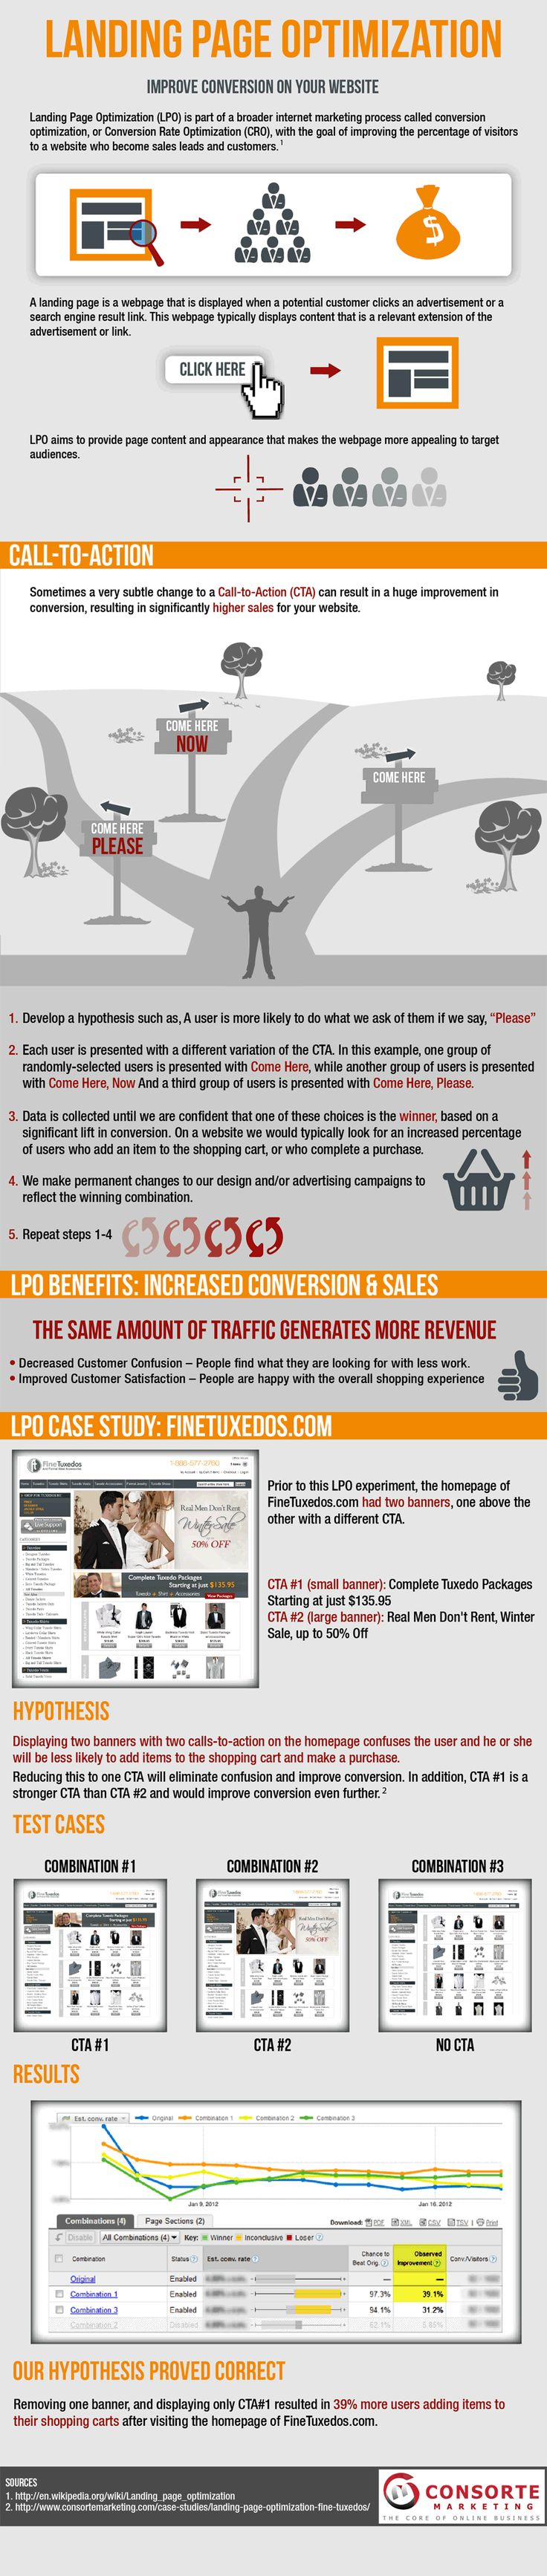 This is an excellent infographic about testing marketing hypothesis through landing page optimization.